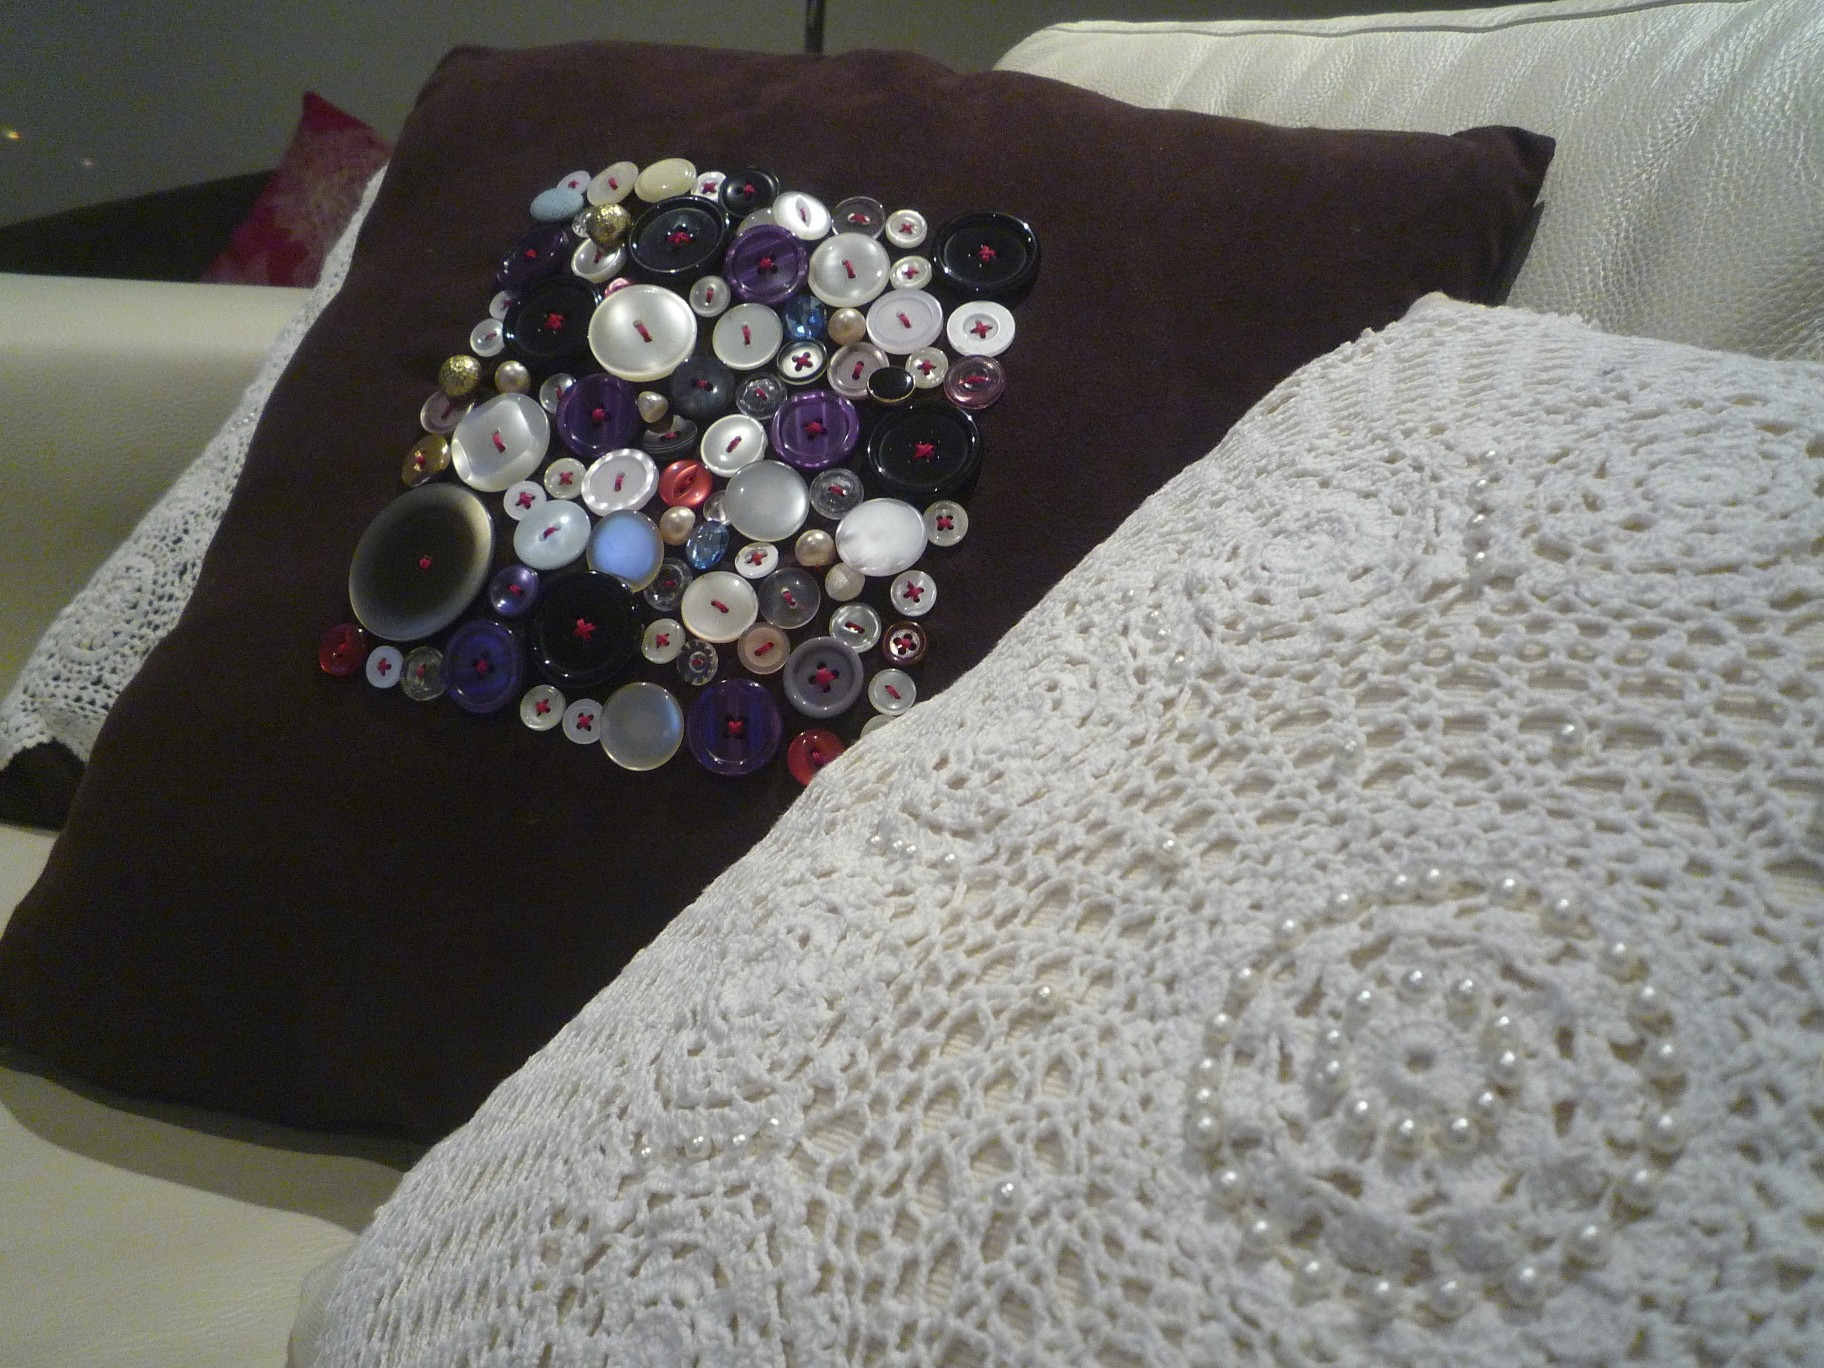 Vintage button cushions